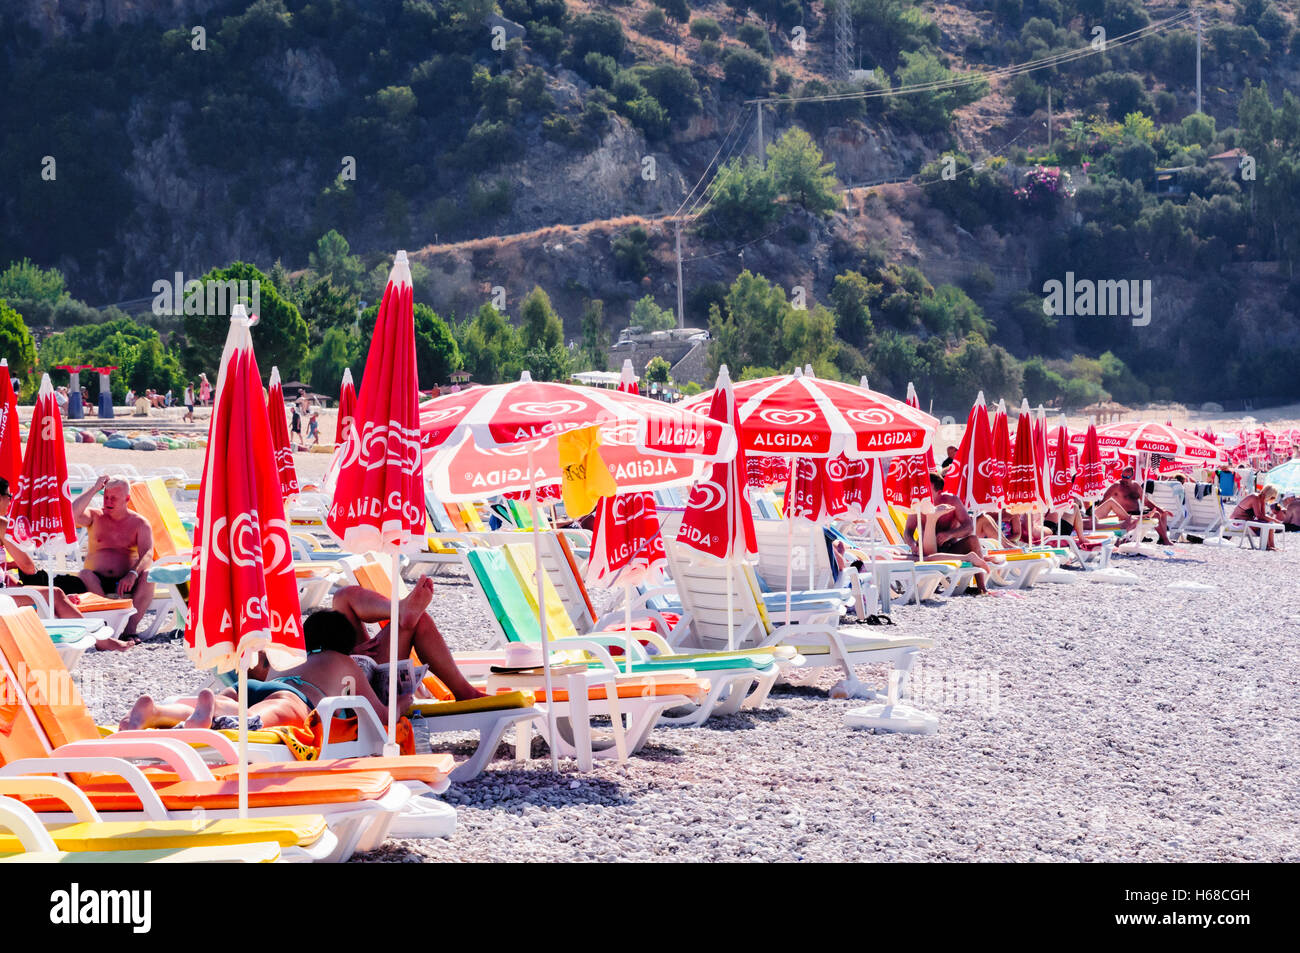 Row of sunloungers and umbrellas on the beach in Oludeniz, Turkey Stock Photo